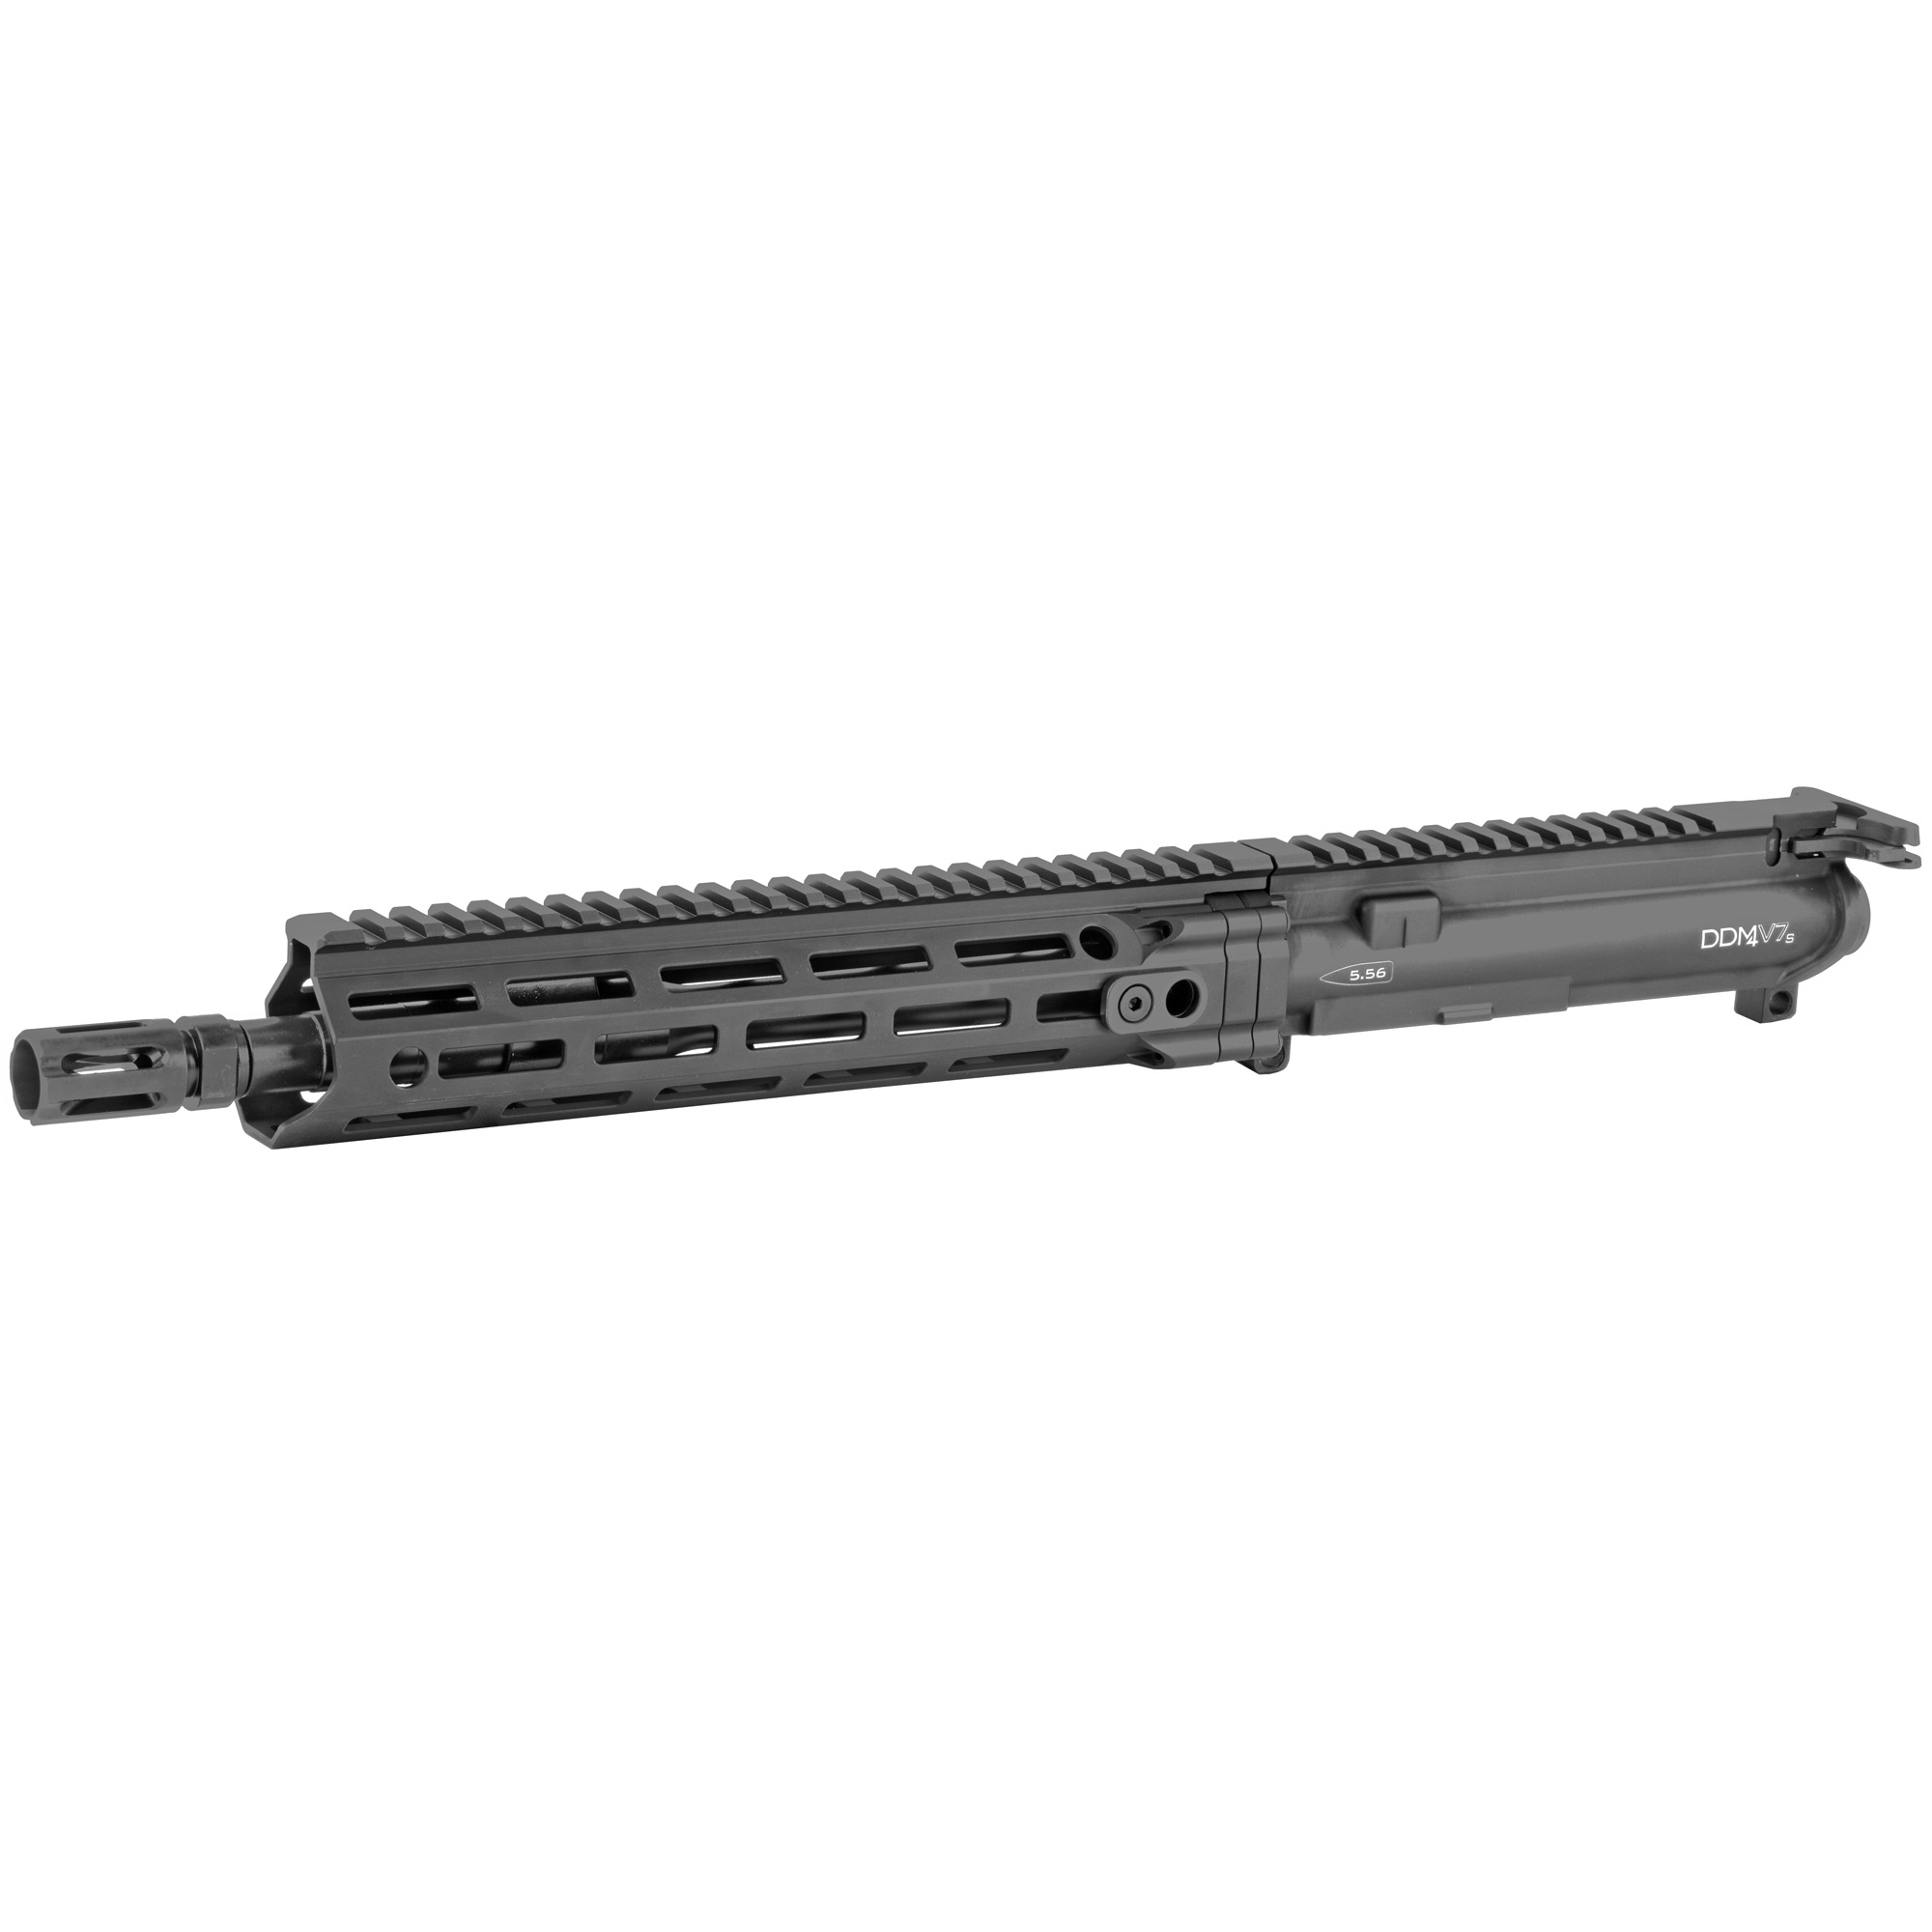 "The Daniel Defense M4 V7 S Upper Receiver Group is built around a Cold Hammer Forged 11.5"" Government profile barrel and equipped with a DD improved Flash Suppressor to reduce flash signature. It features a carbine length gas system for smooth"" reliable cycling under harsh conditions and reduced perceived recoil. The MFR 10.0 handguard offers incredible weight savings as well as superior cooling"" ergonomics"" and modularity while maintaining the strength and durability expected from Daniel Defense. With the M-LOK attachment points that run along 7 positions and an uninterrupted 1913 Picatinny rail on top"" the V7 S Upper Receiver Group has plenty of room for the sights"" optics"" and accessories the user may require. The new independently ambi GRIP-N-RIP Charging Handle accommodates left- and right-handed shooters and is engineered for suppressed fire"" with anti-gas features that redirect gas flow upward and away from the face and operator. All Daniel Defense complete upper receiver groups come standard with an M16 profile bolt carrier group. NFA DISCLAIMER: This firearm is a regulated item by the National Firearms Act (NFA). Please check with your local and state municipalities for any further regulatory requirements. It is the buyer's responsibility to make sure they comply with all NFA rules and applicable laws."